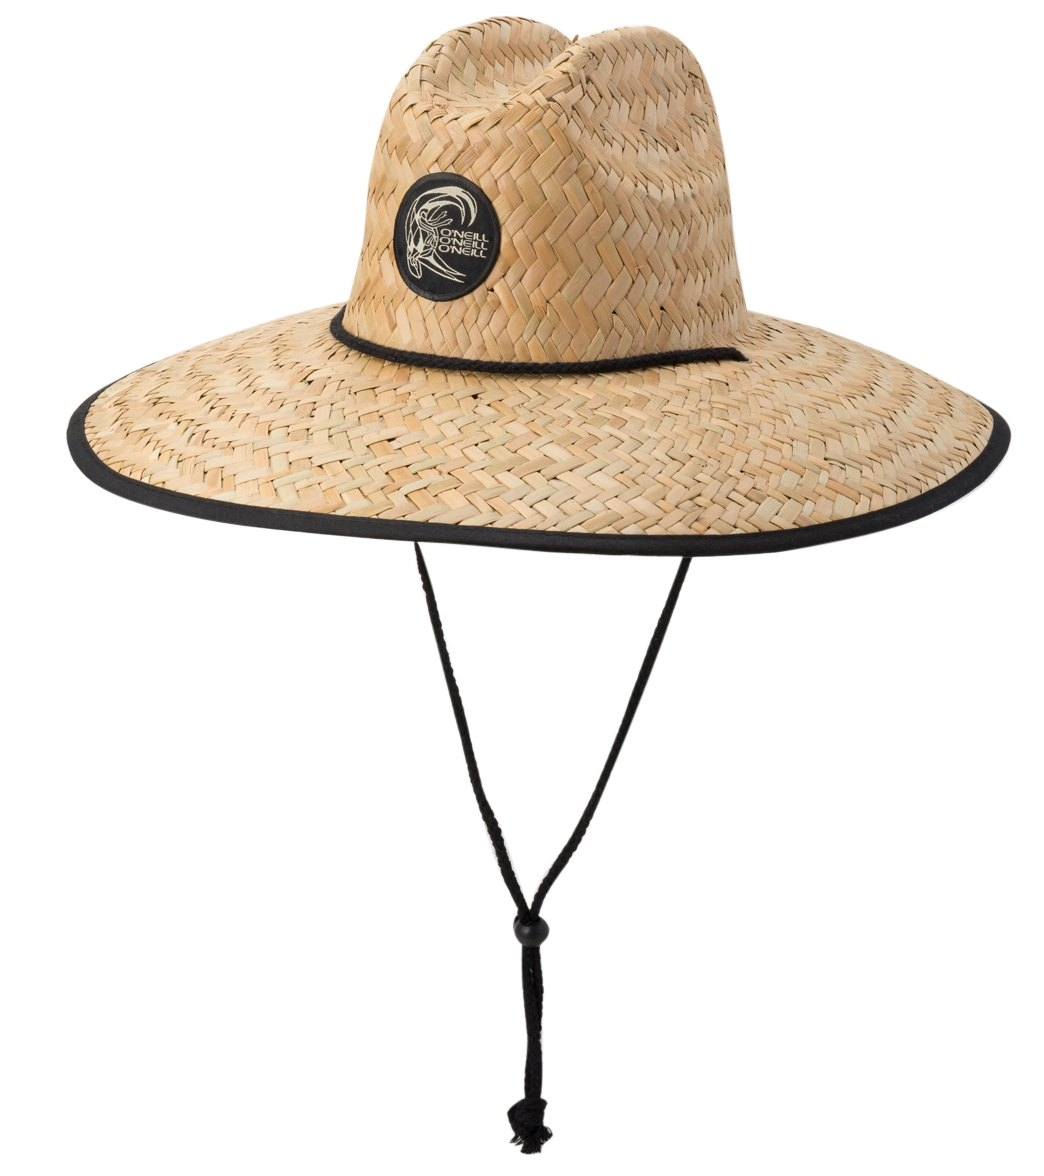 27fefc7c65995 O Neill Men s Sonoma Straw Hat at SwimOutlet.com